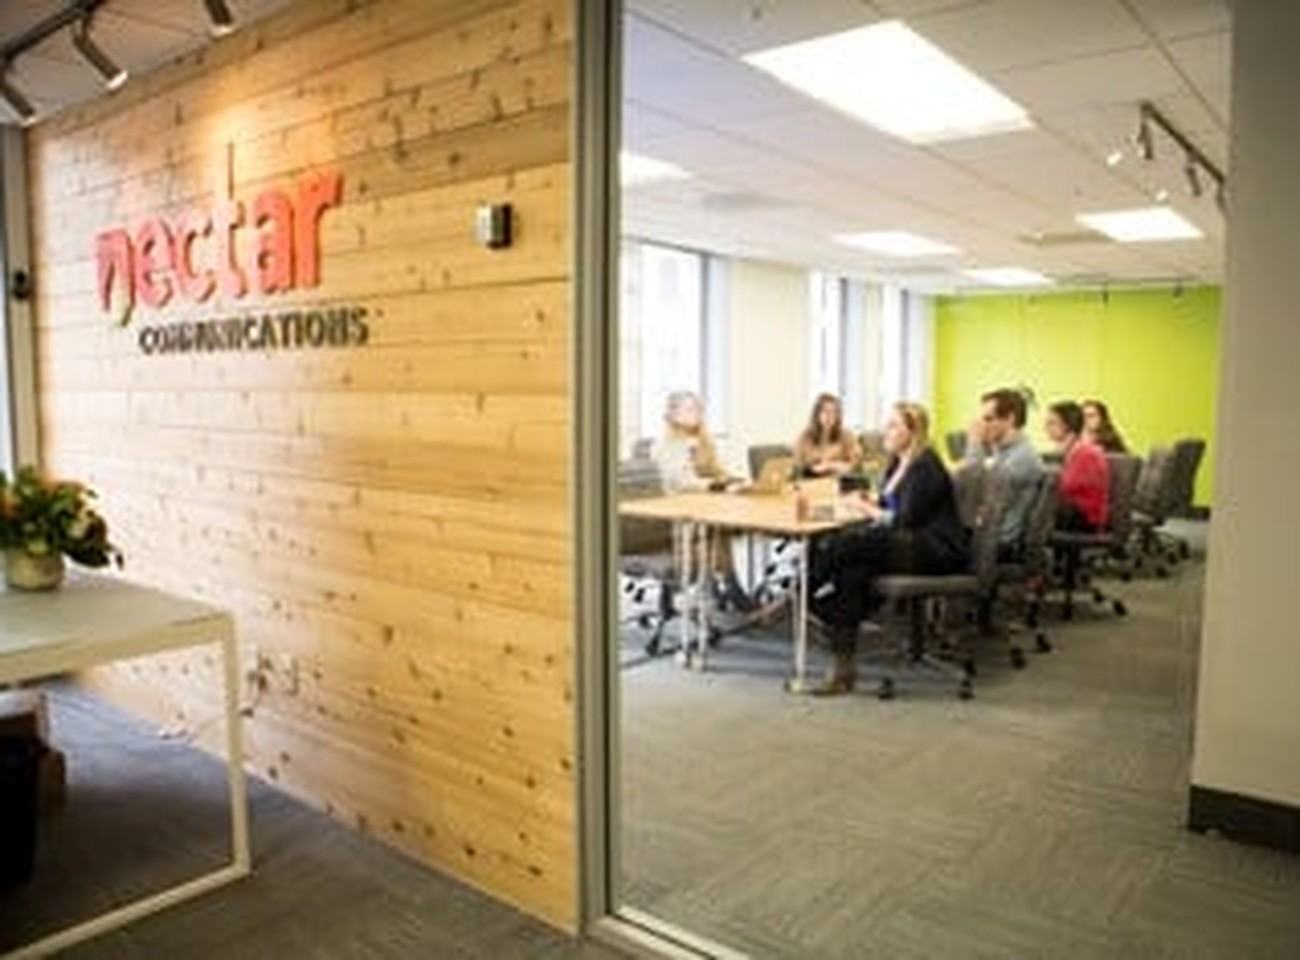 Nectar Communications Careers